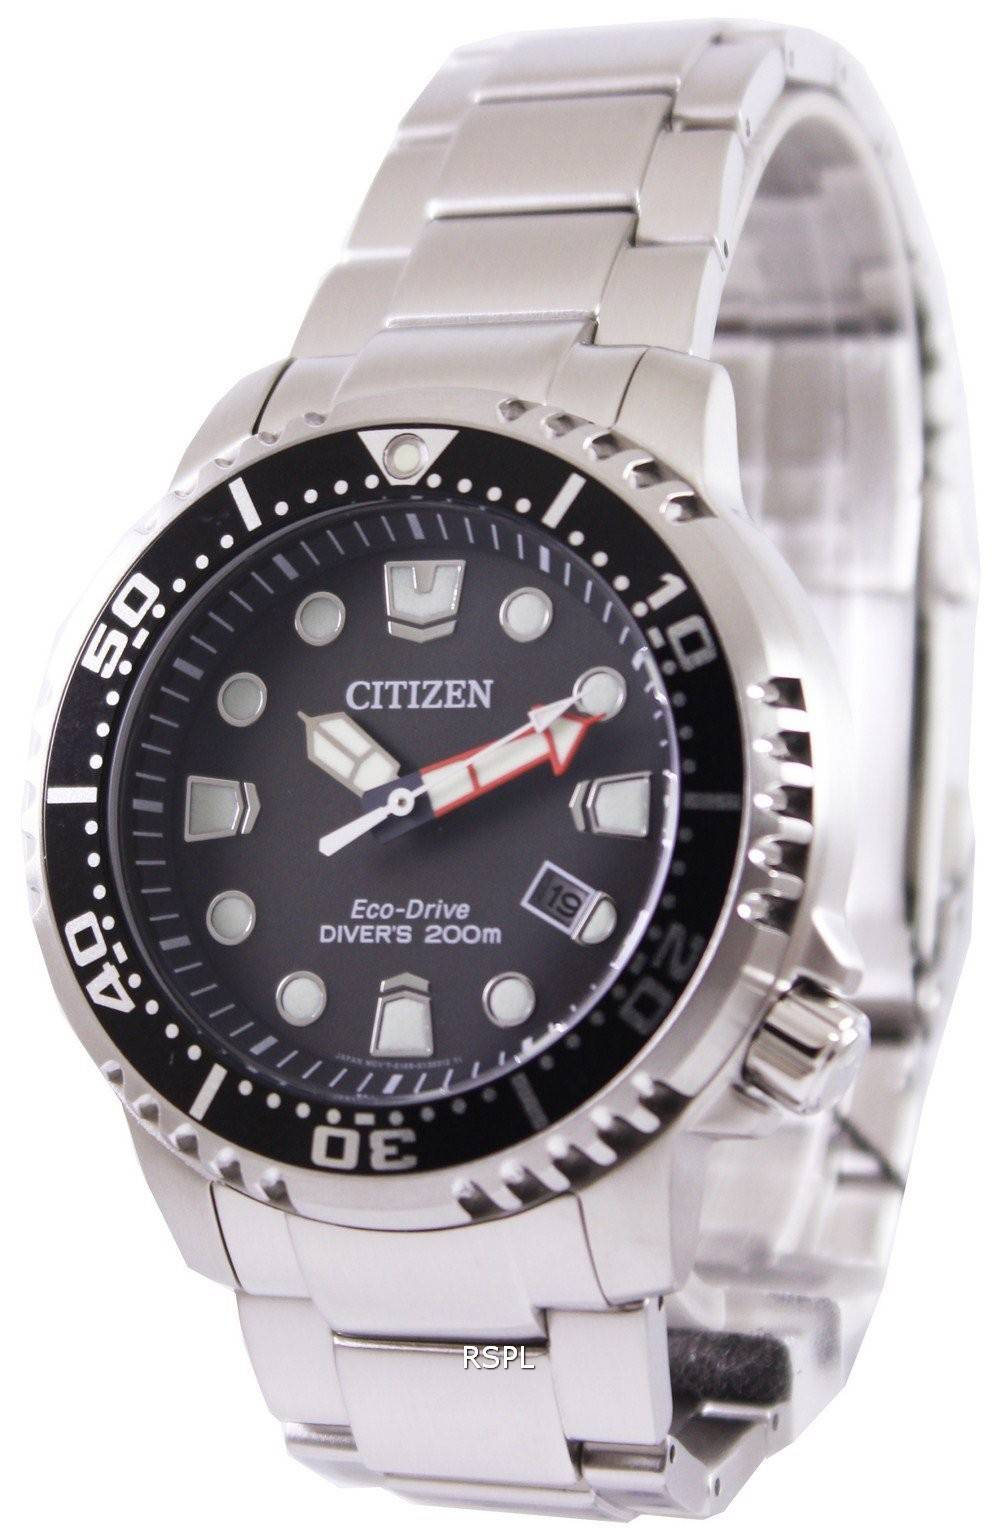 Buy original Citizen BJ7081-51E Promaster Watch online at. Citizen  BJ7081-51E Promaster Eco-Drive GMT 200m Mens. Buy Authentic Citizen Eco  Drive BJ7081. c71d0c048bdd